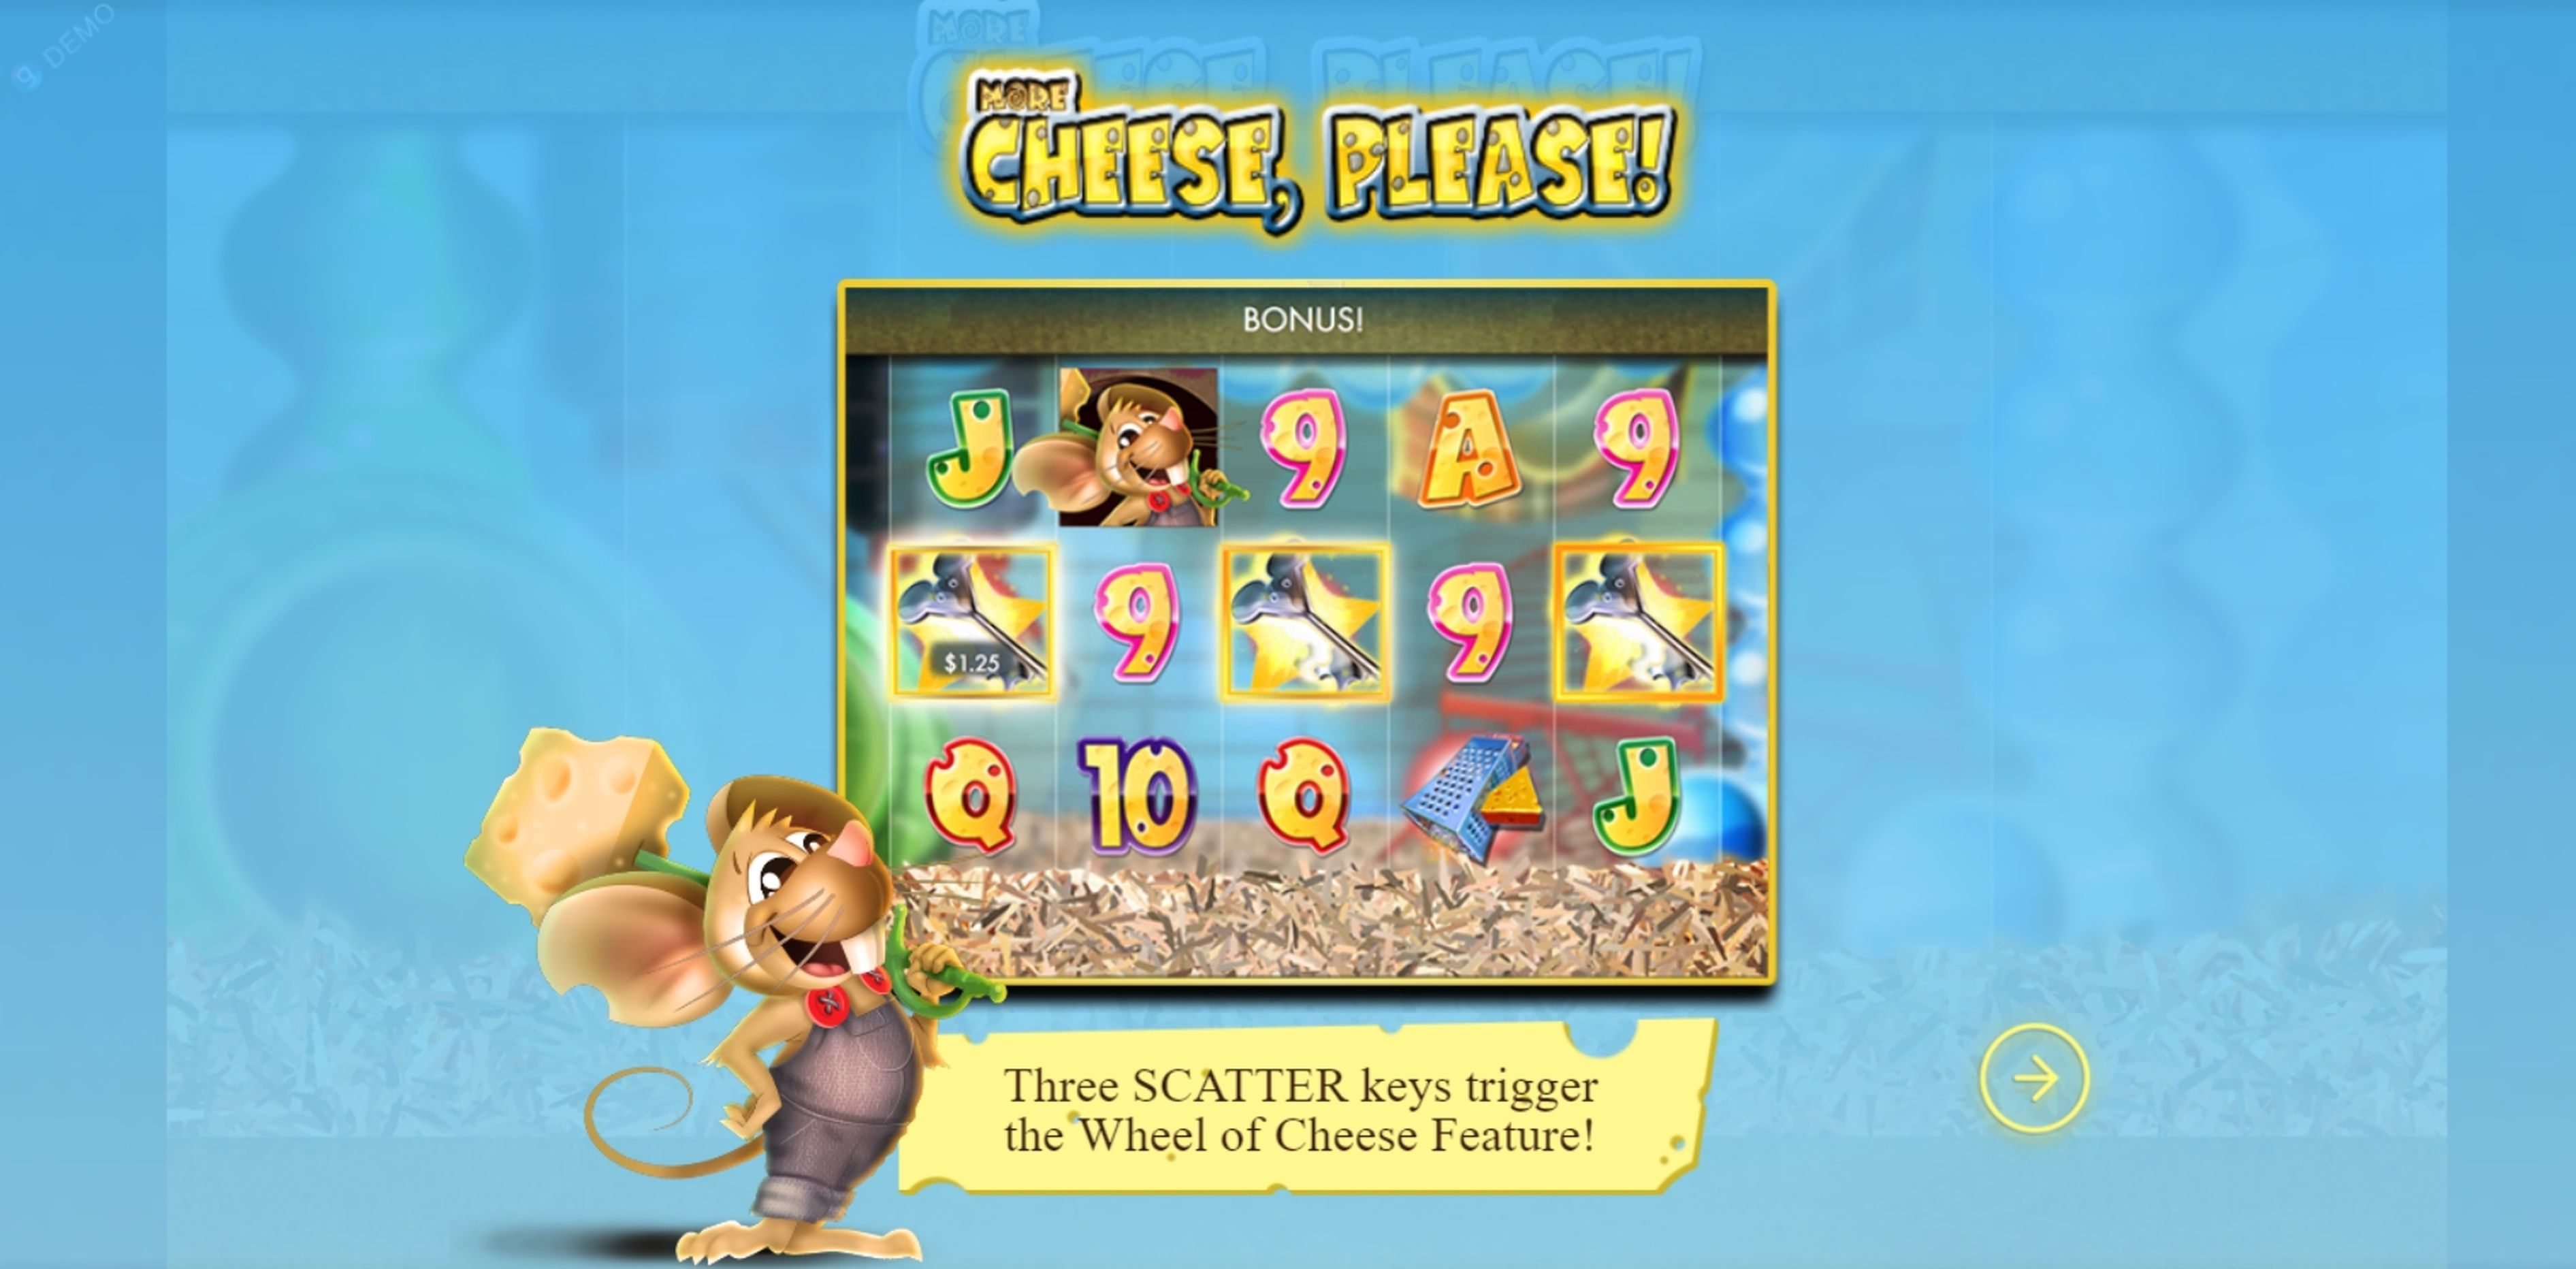 Play More Cheese Please Free Casino Slot Game by Genesis